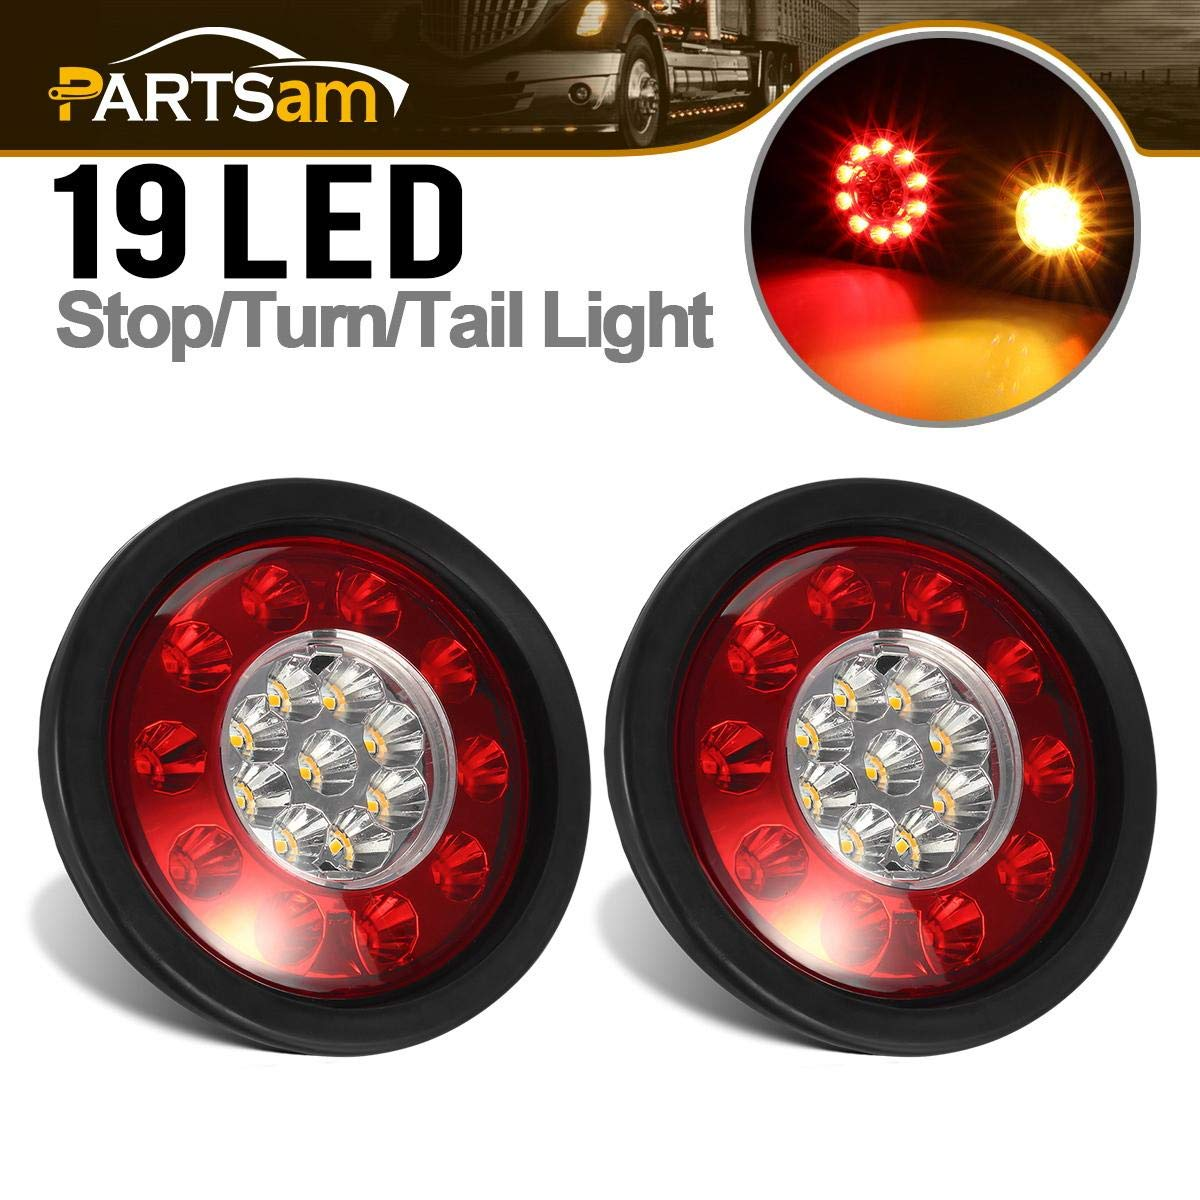 Led Truck Tail Lights >> Partsam 2 Pcs Red Amber Round Led Trailer Tail Lights 19 Led Multi Function Brake Stop Turn Tail Lights Grommet Mount 4 Inch Round Led Tail Lights 4